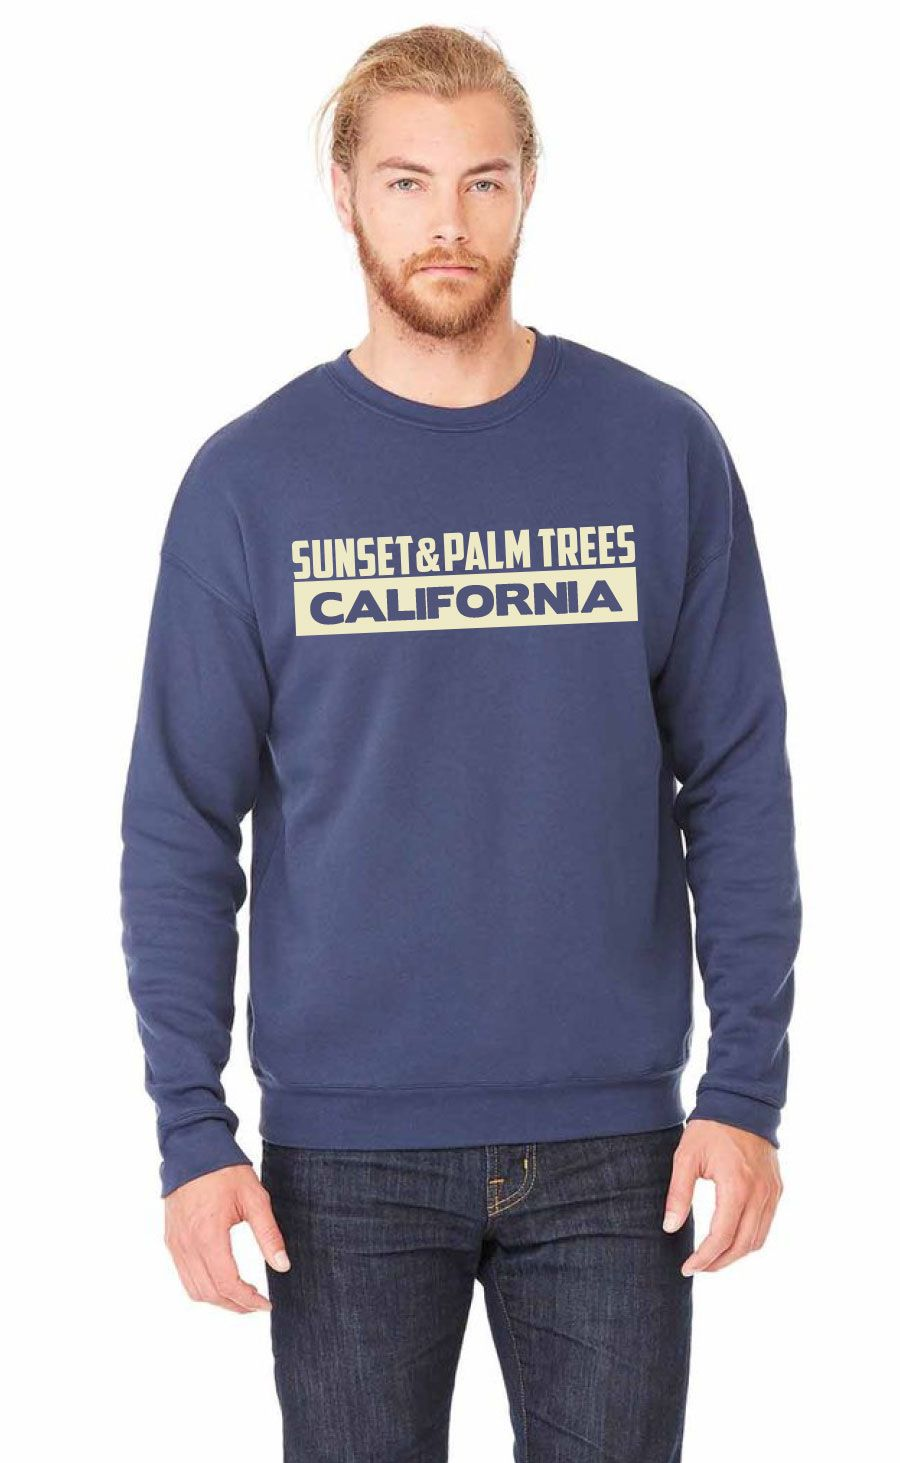 Sunset California Sweater  A soft navy crewneck sweater to keep you warm during those nights under the stars, or it could just be a little cold outside.   100% cotton